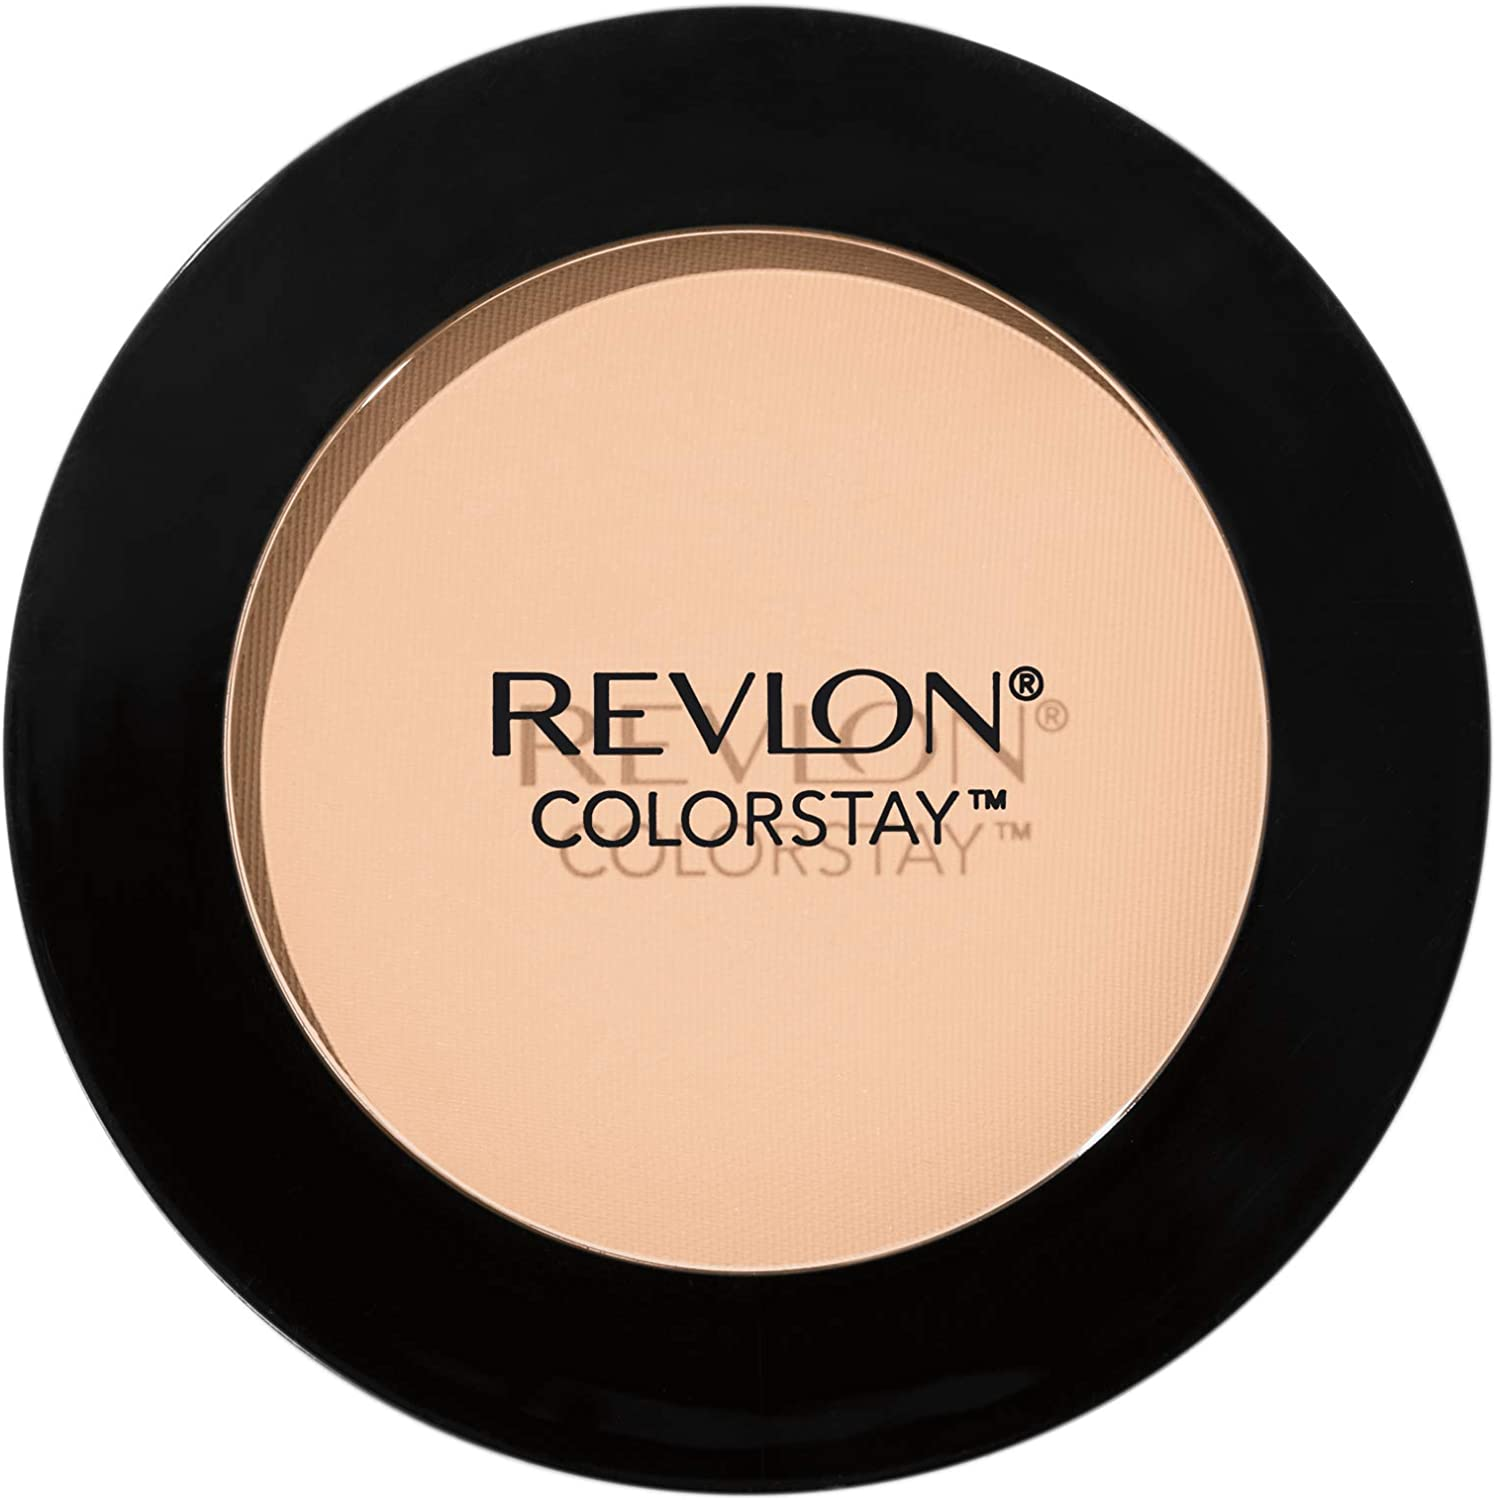 Revlon ColorStay™ Pressed Powder